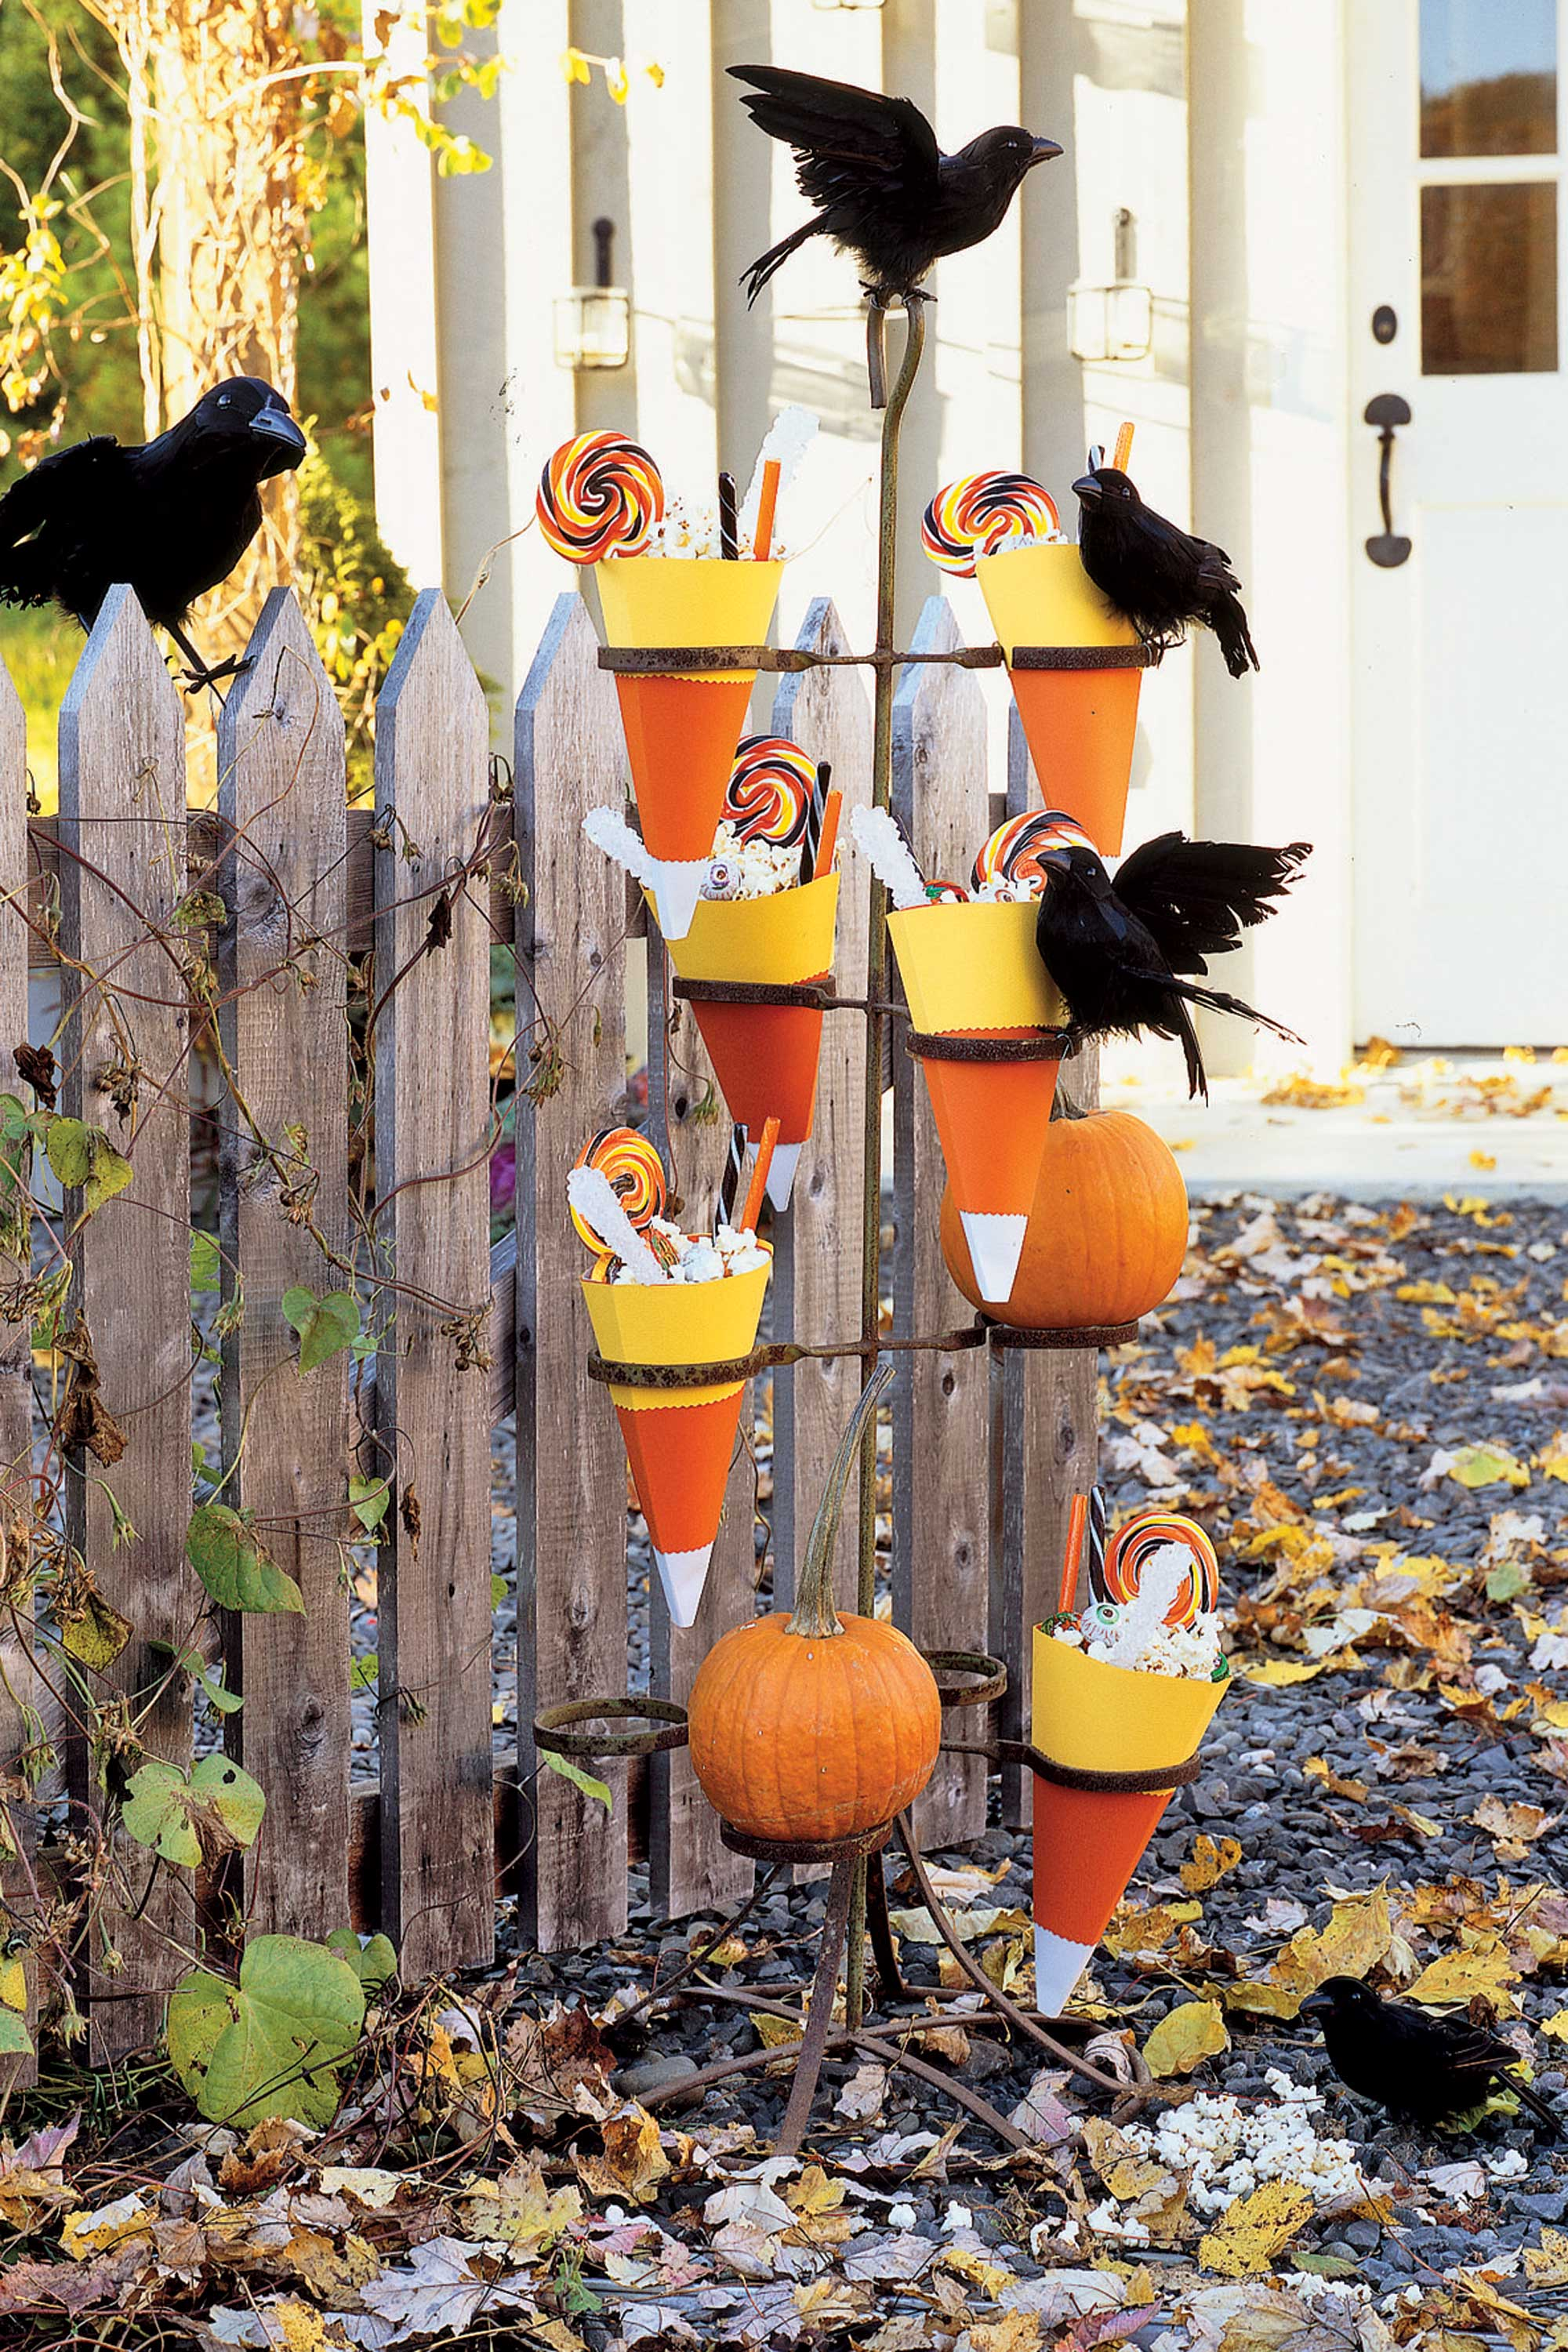 56 fun halloween party decorating ideas spooky halloween party decor - Decoration For Halloween Ideas